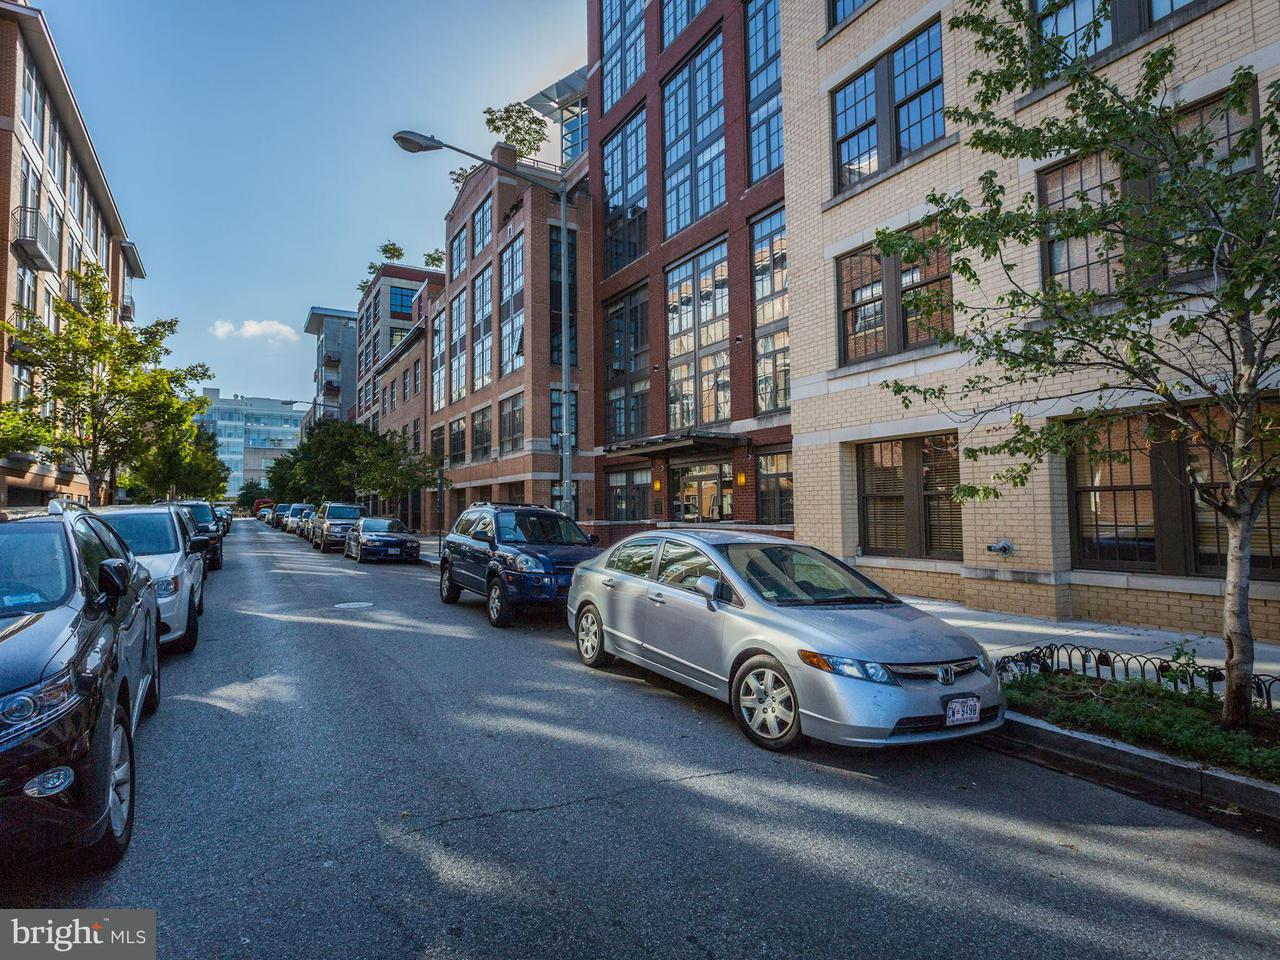 Additional photo for property listing at 1444 Church St Nw #703 Ph 1444 Church St Nw #703 Ph Washington, Distretto Di Columbia 20005 Stati Uniti